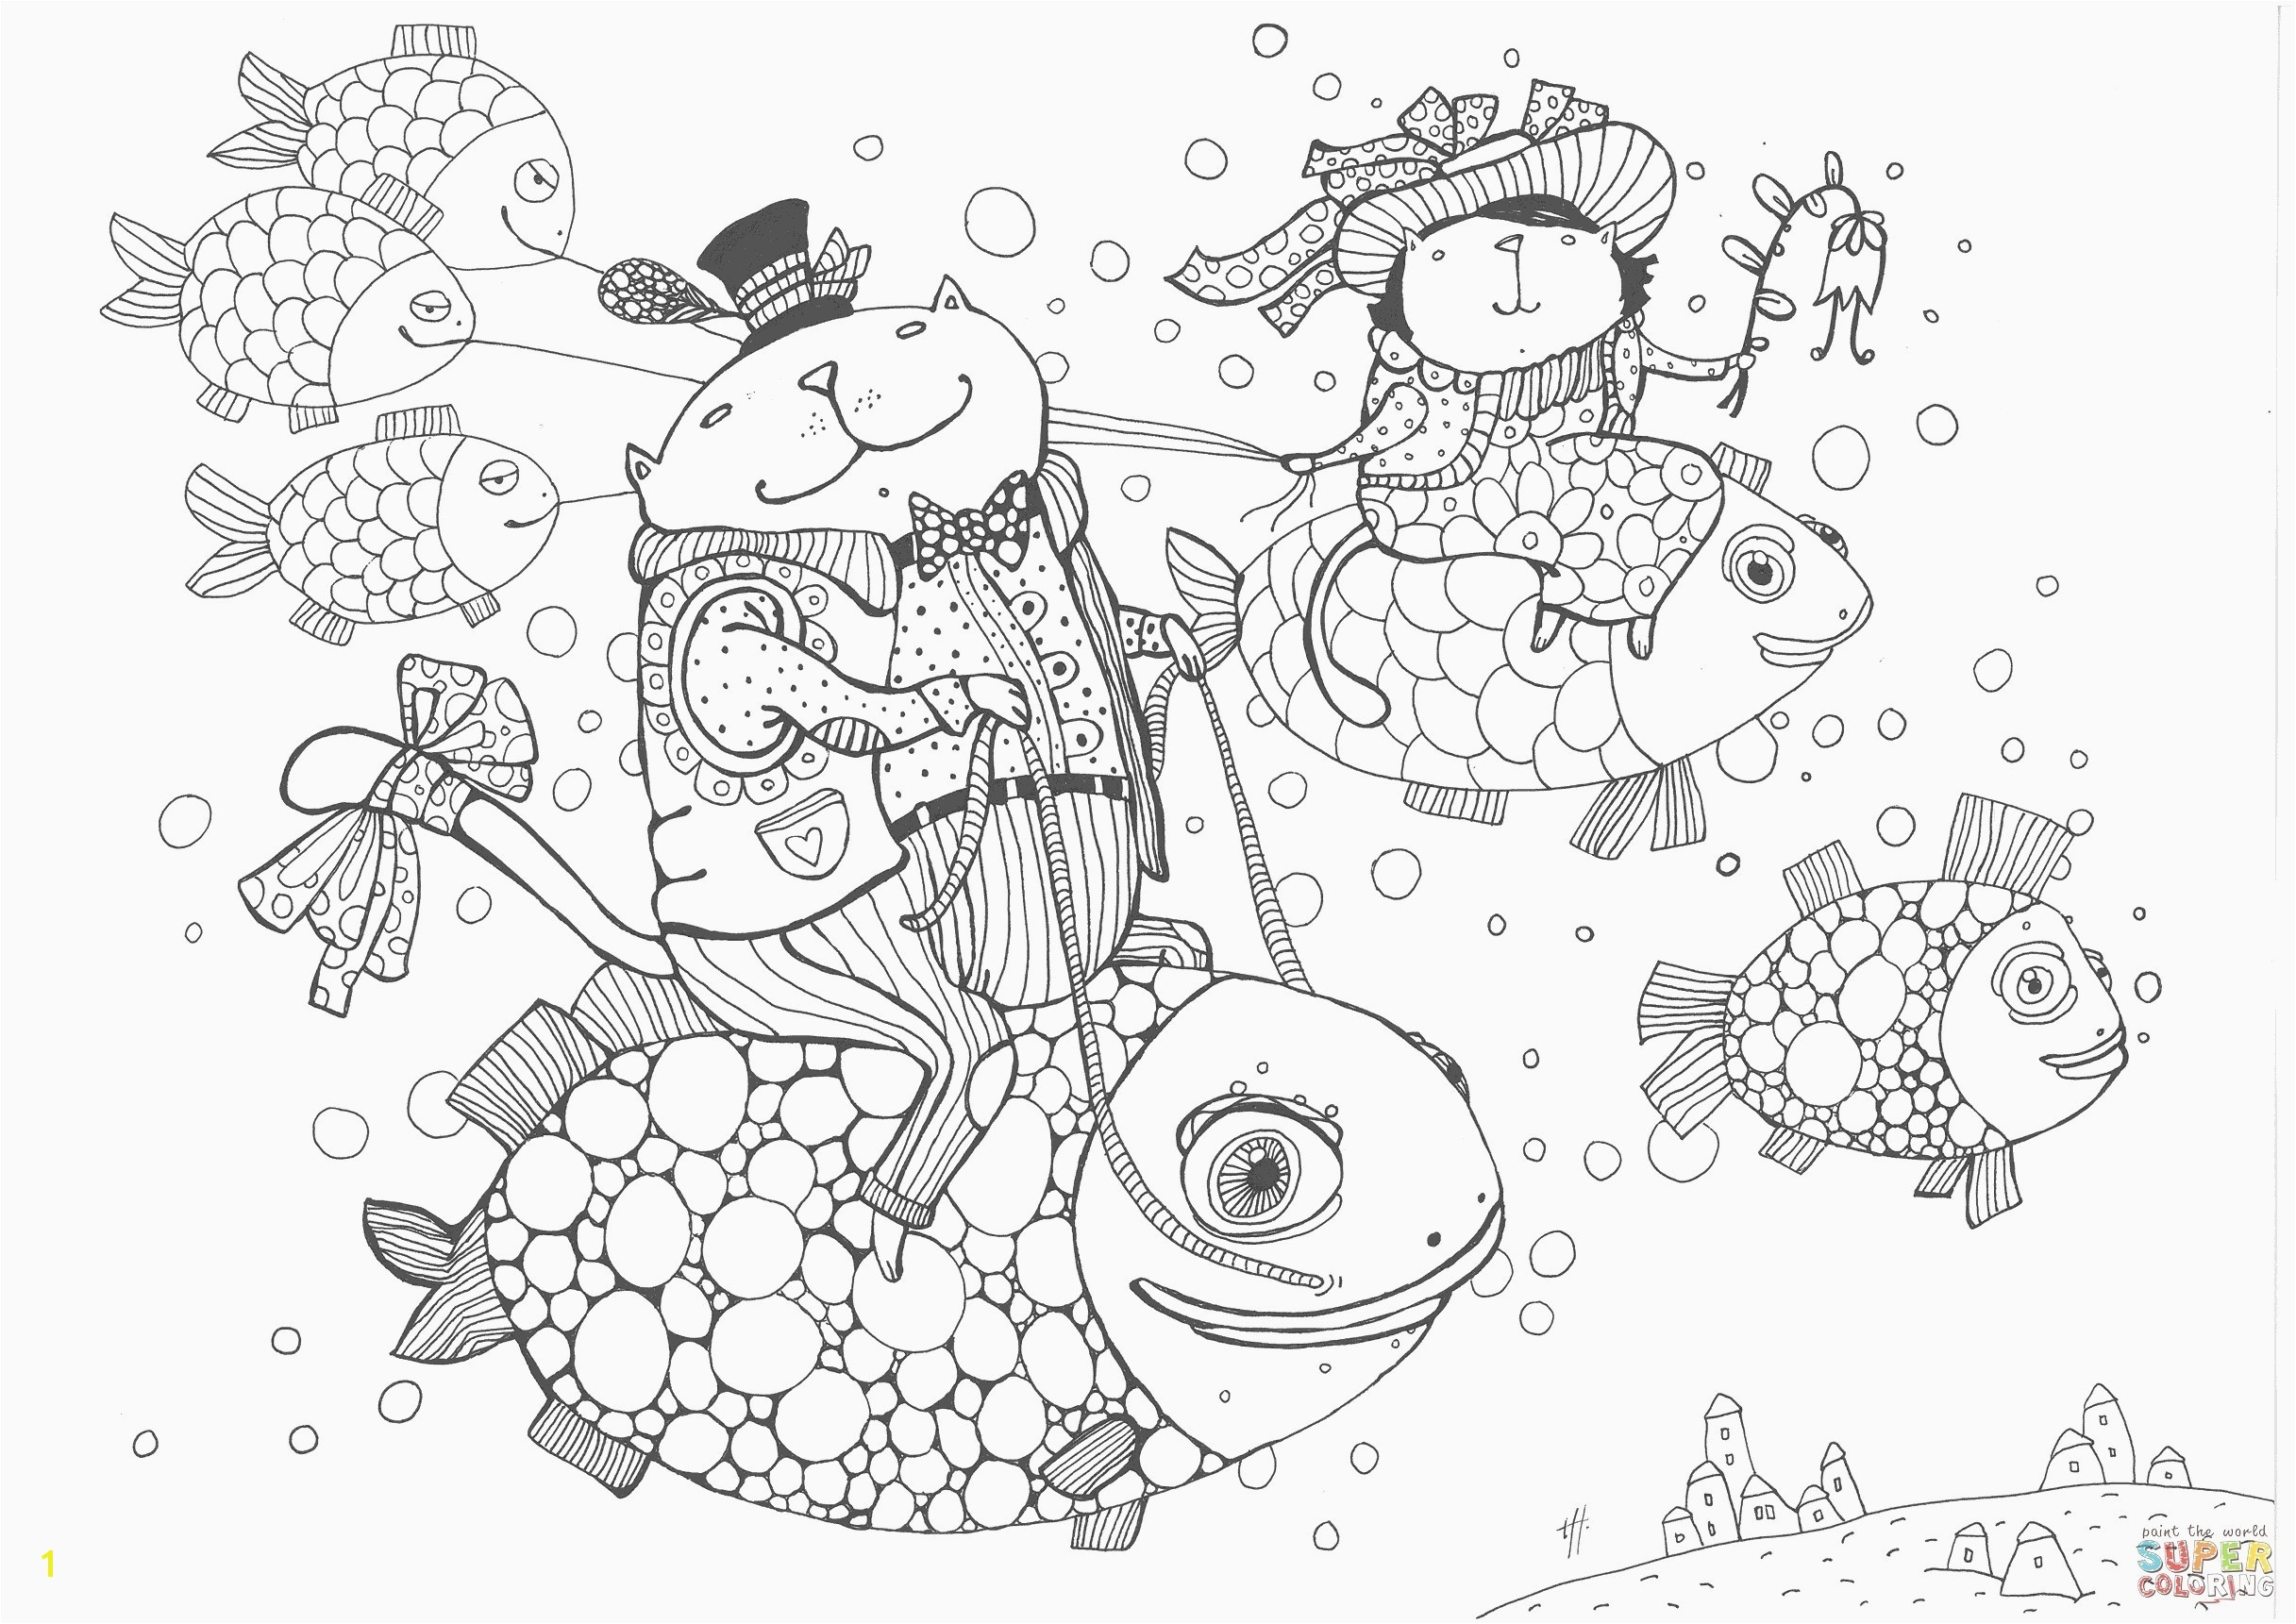 Get Well soon Coloring Pages Elegant Adult Halloween Coloring Pages Elegant Halloween Coloring Pages Free